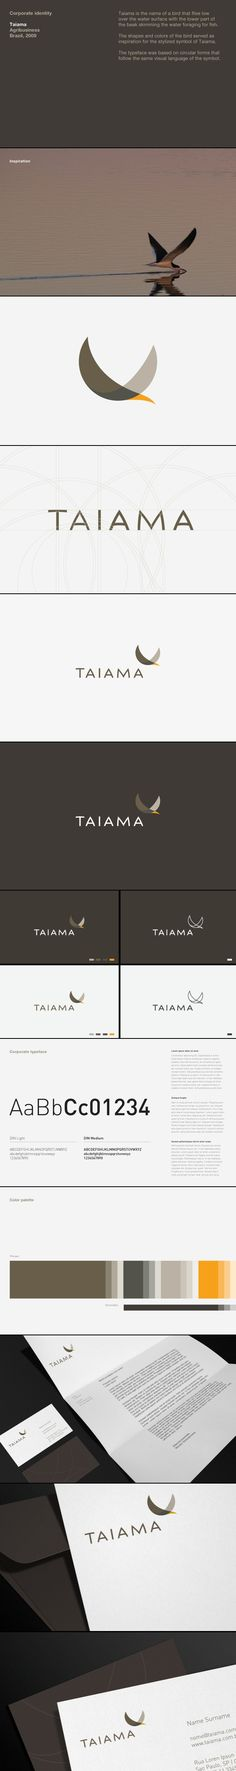 Taiama Logo Design, Inspiration & Corporate Identity via Beahnce